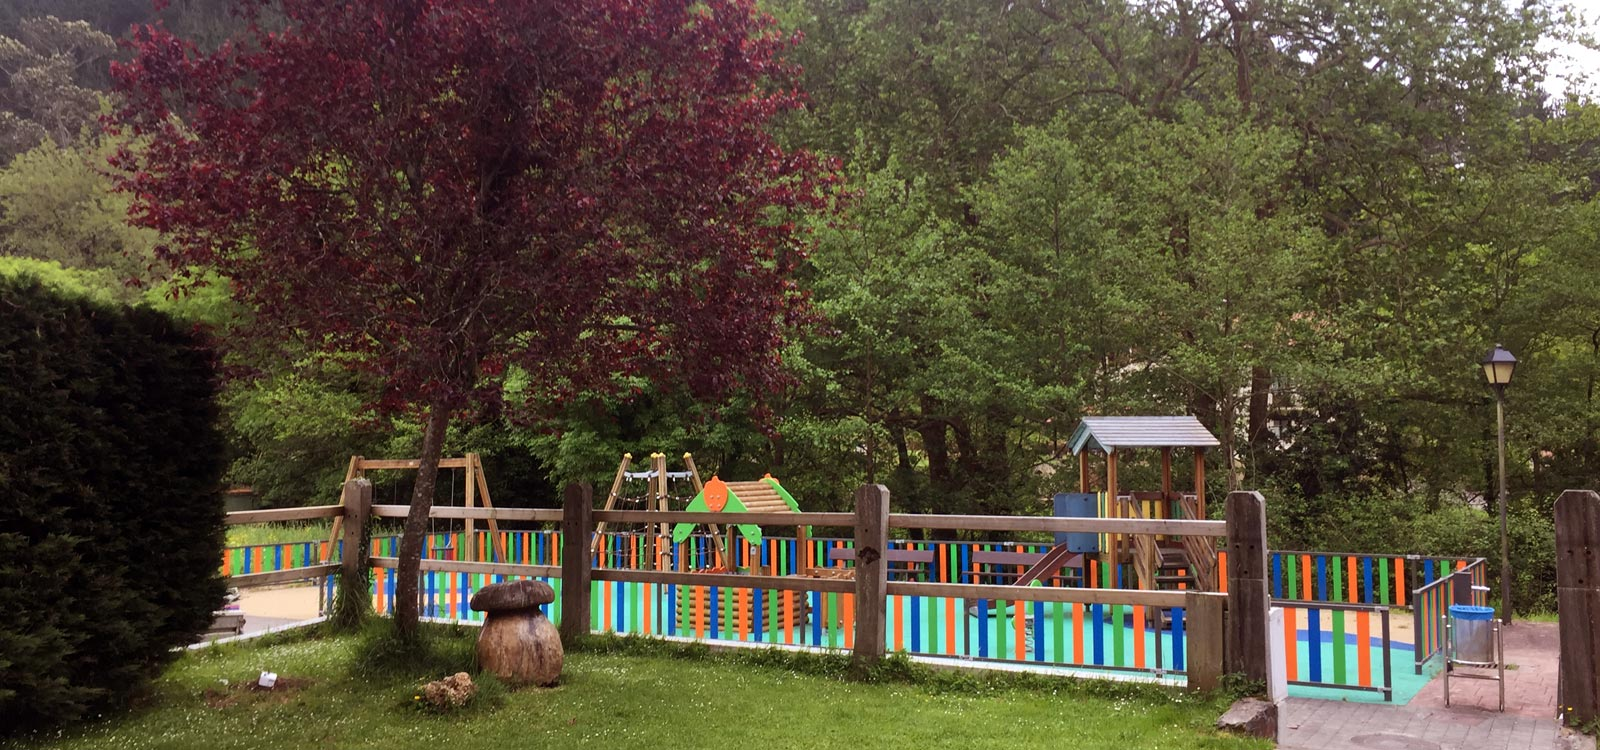 play area forr children